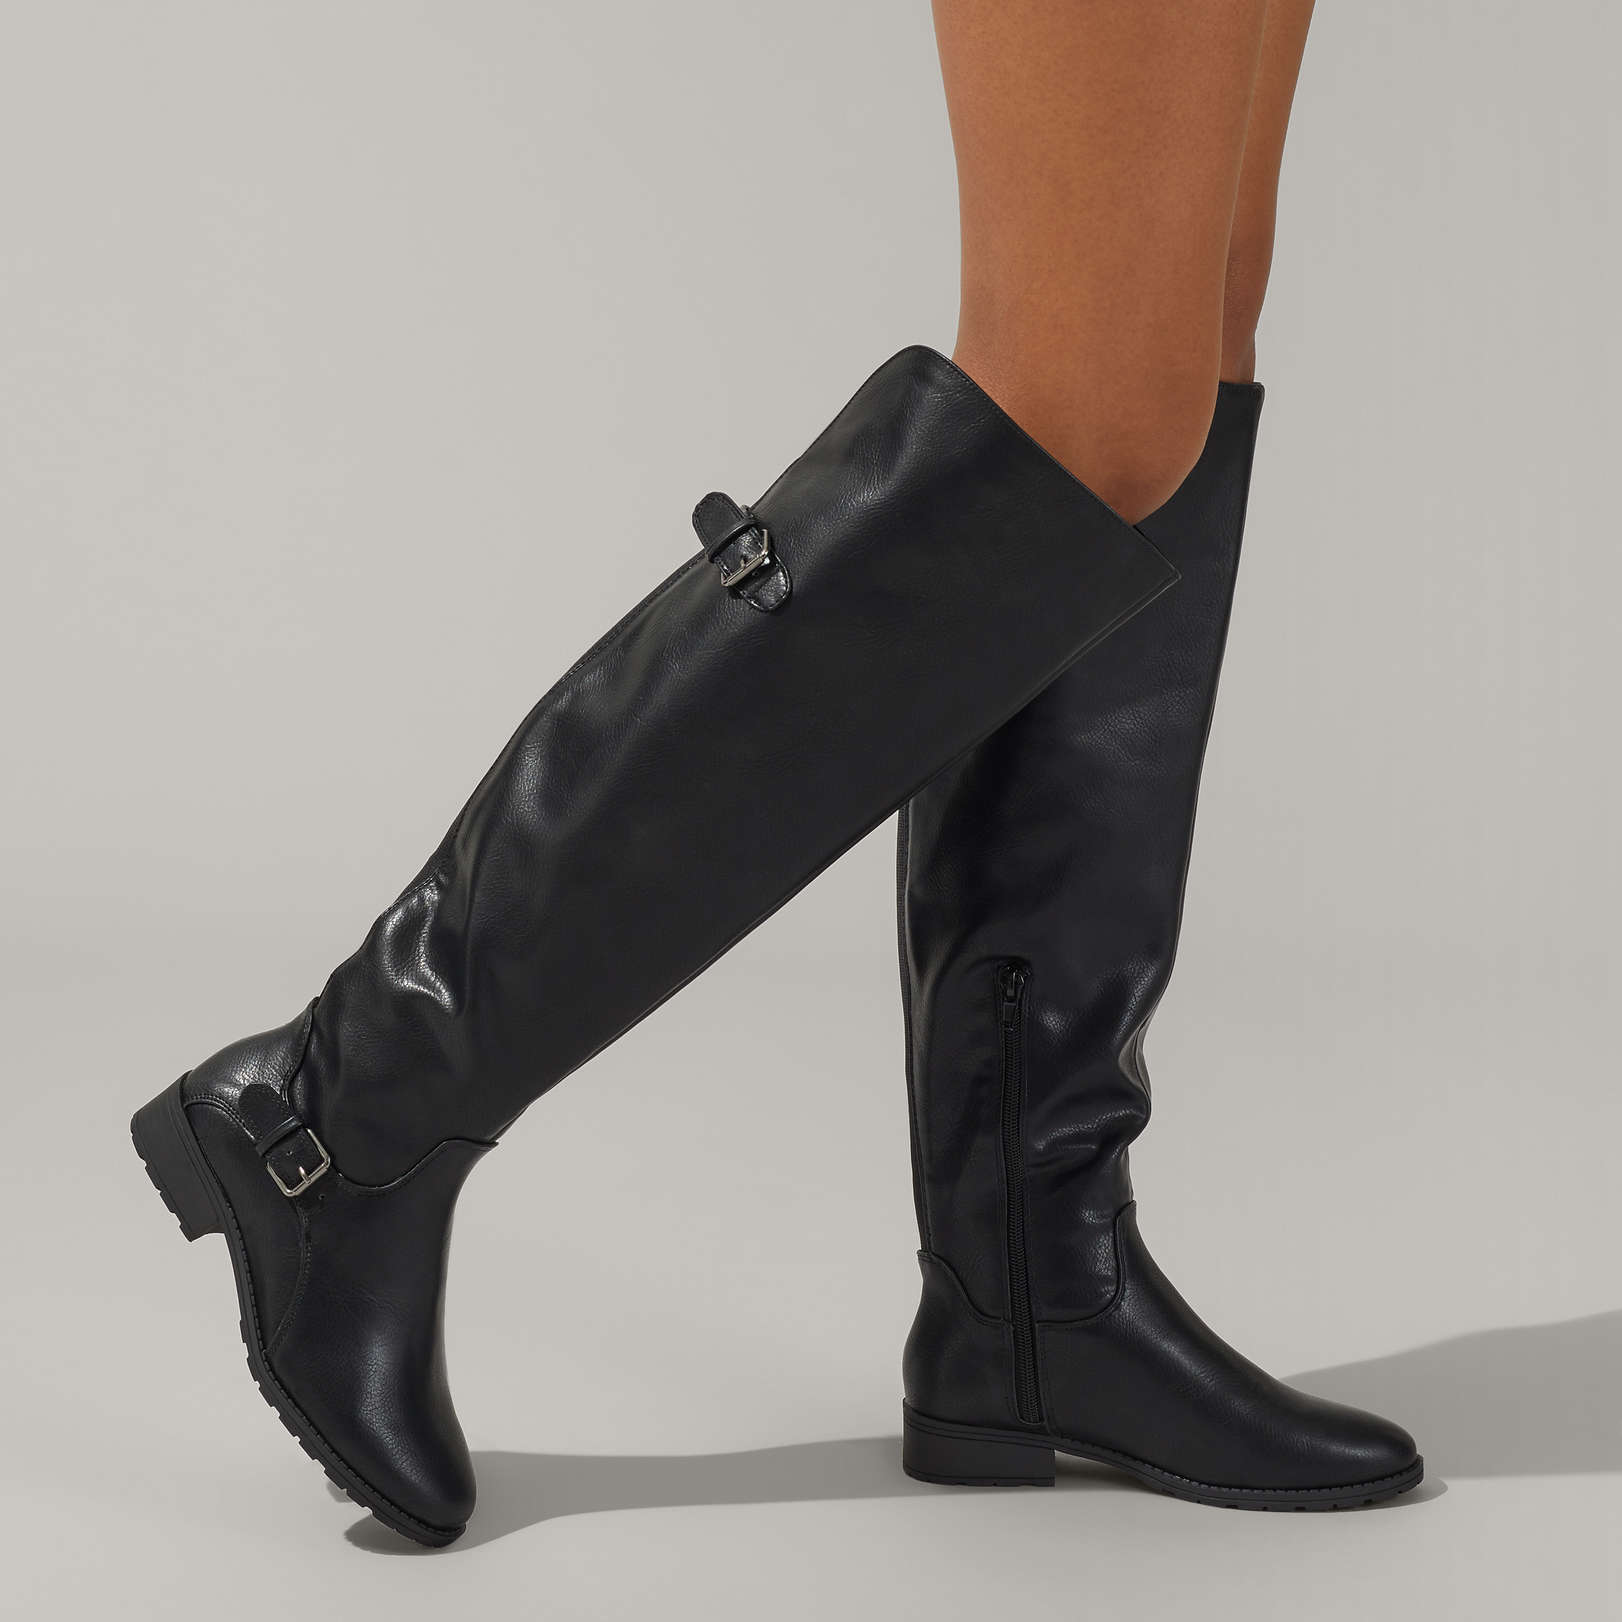 HAPPILY - MISS KG High Leg Boots